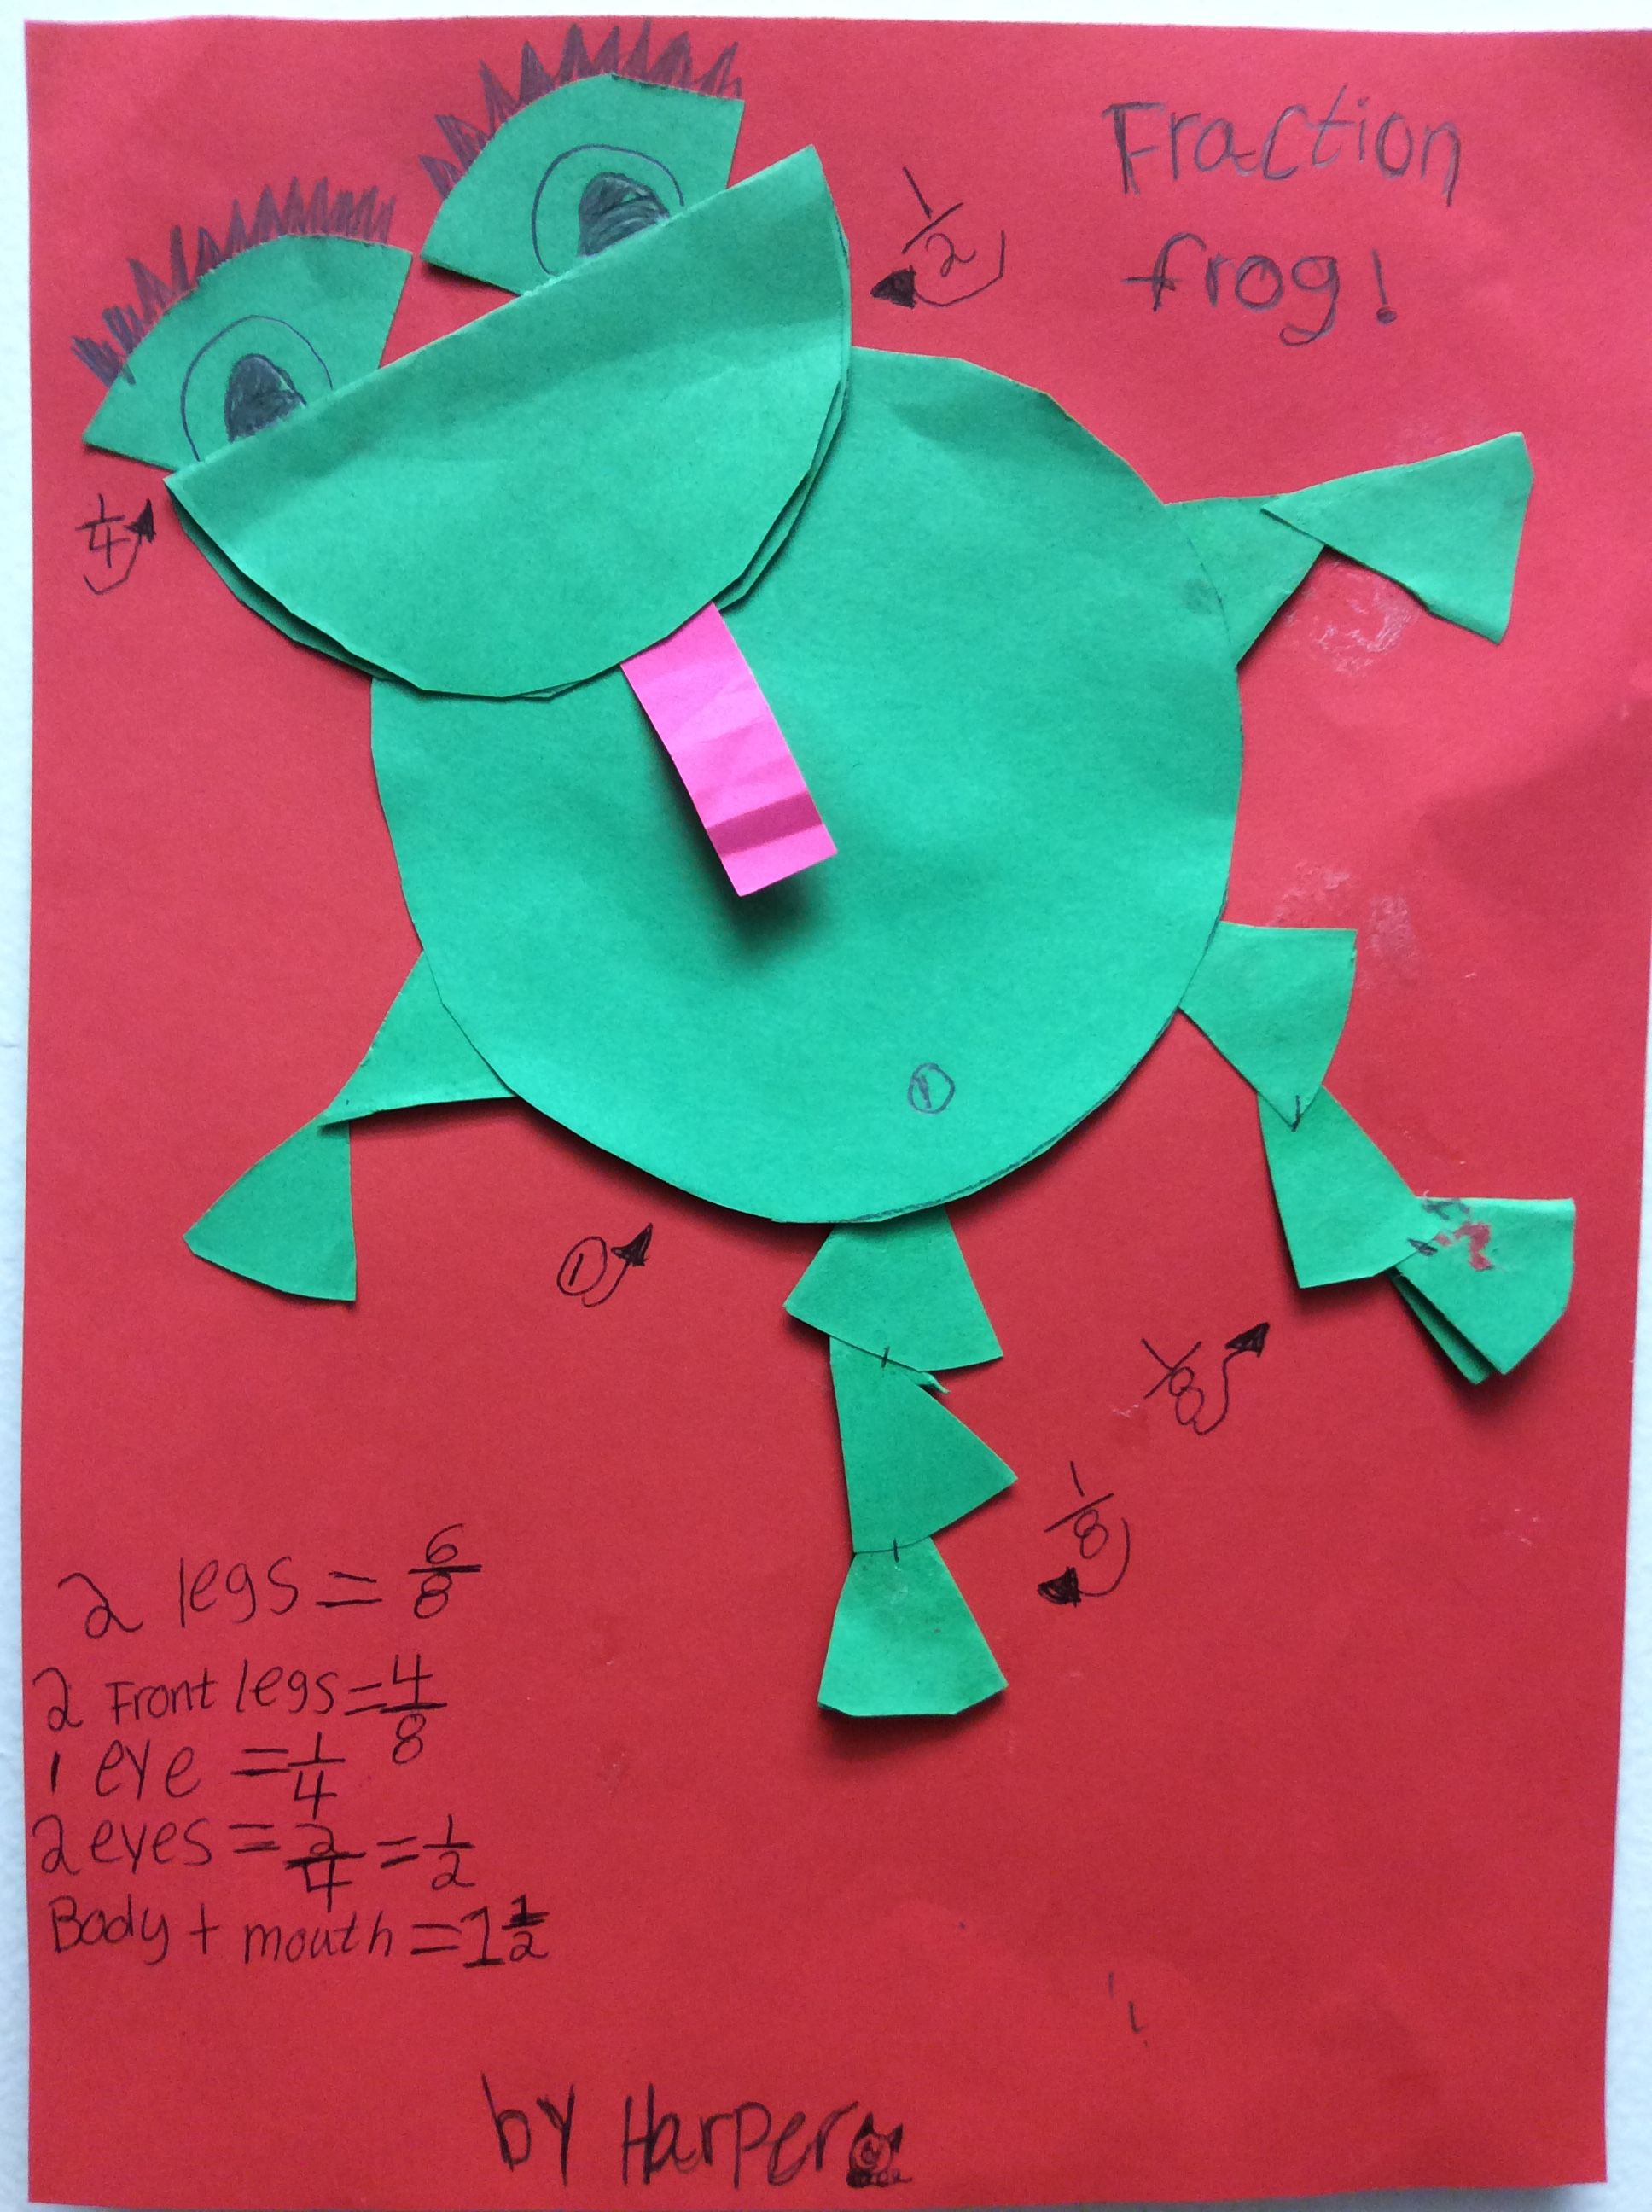 Fraction Frog So Cute Math Fractions Parcc Fractions Kids Learning [ 2592 x 1936 Pixel ]